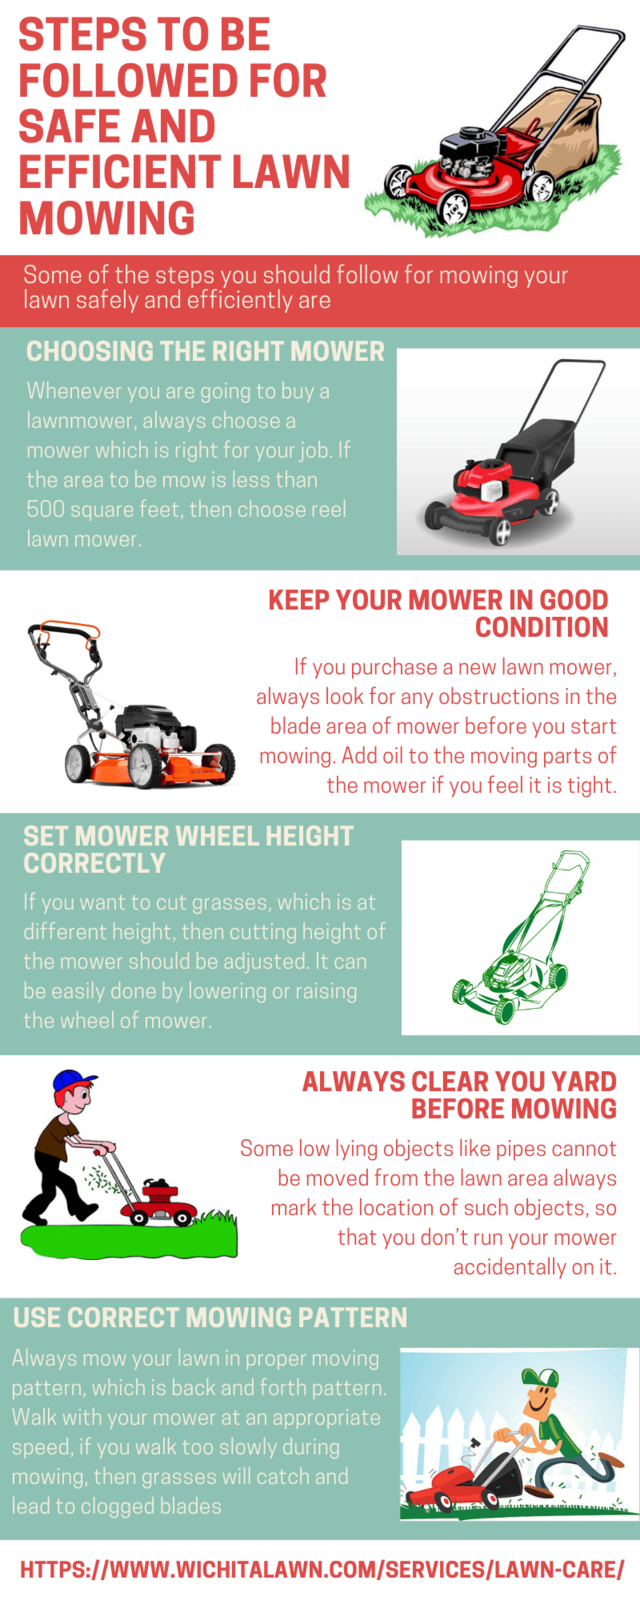 Steps to be followed for safe and efficient lawn mowing